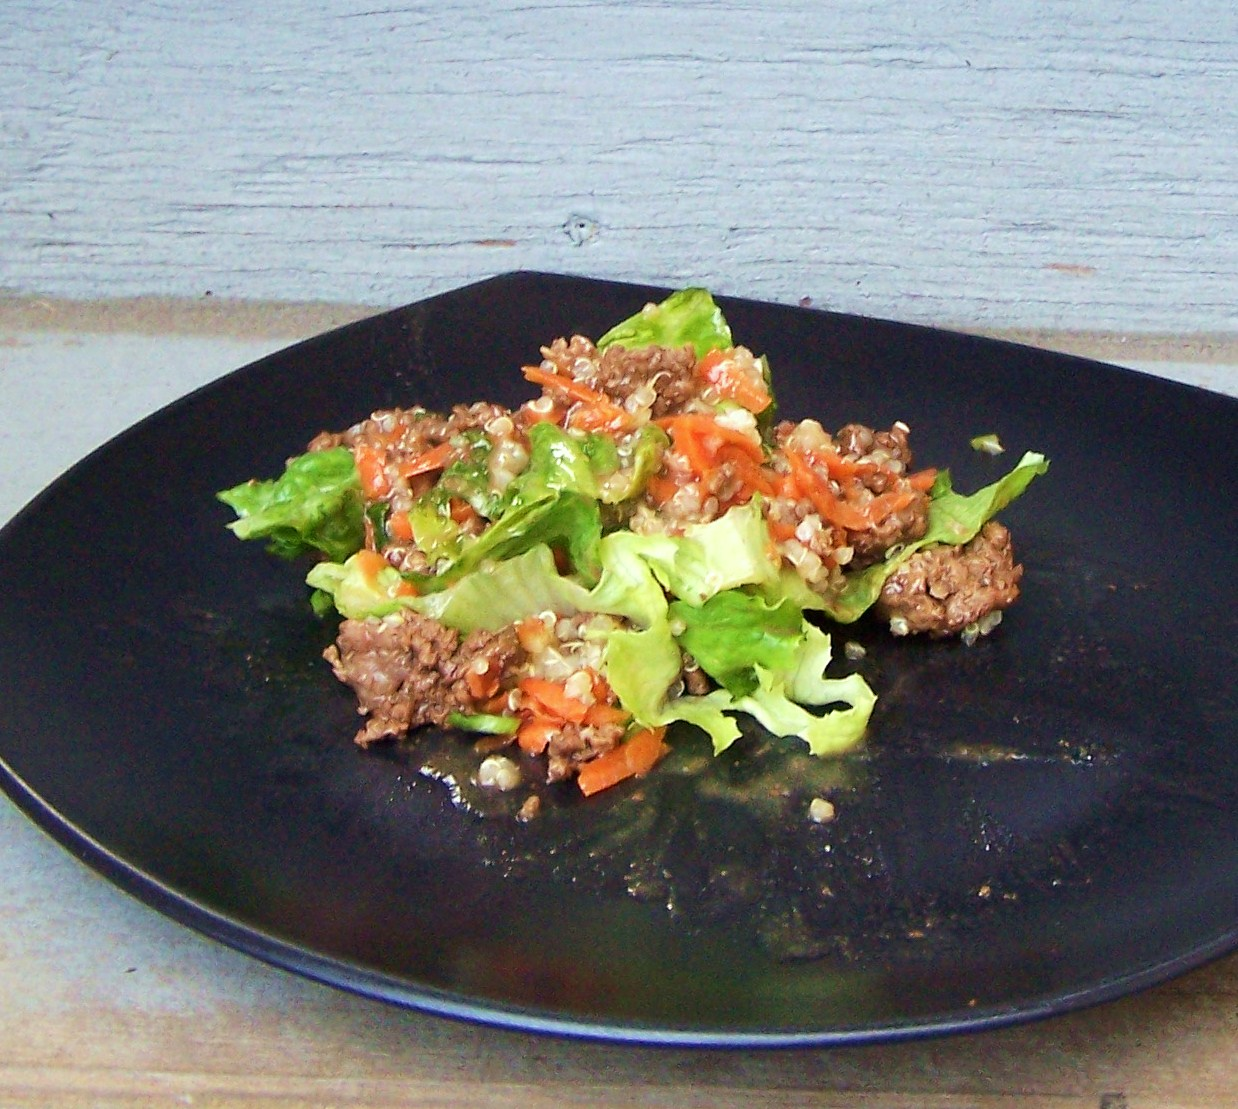 Teriyaki Beef & Quinoa on Lettuce